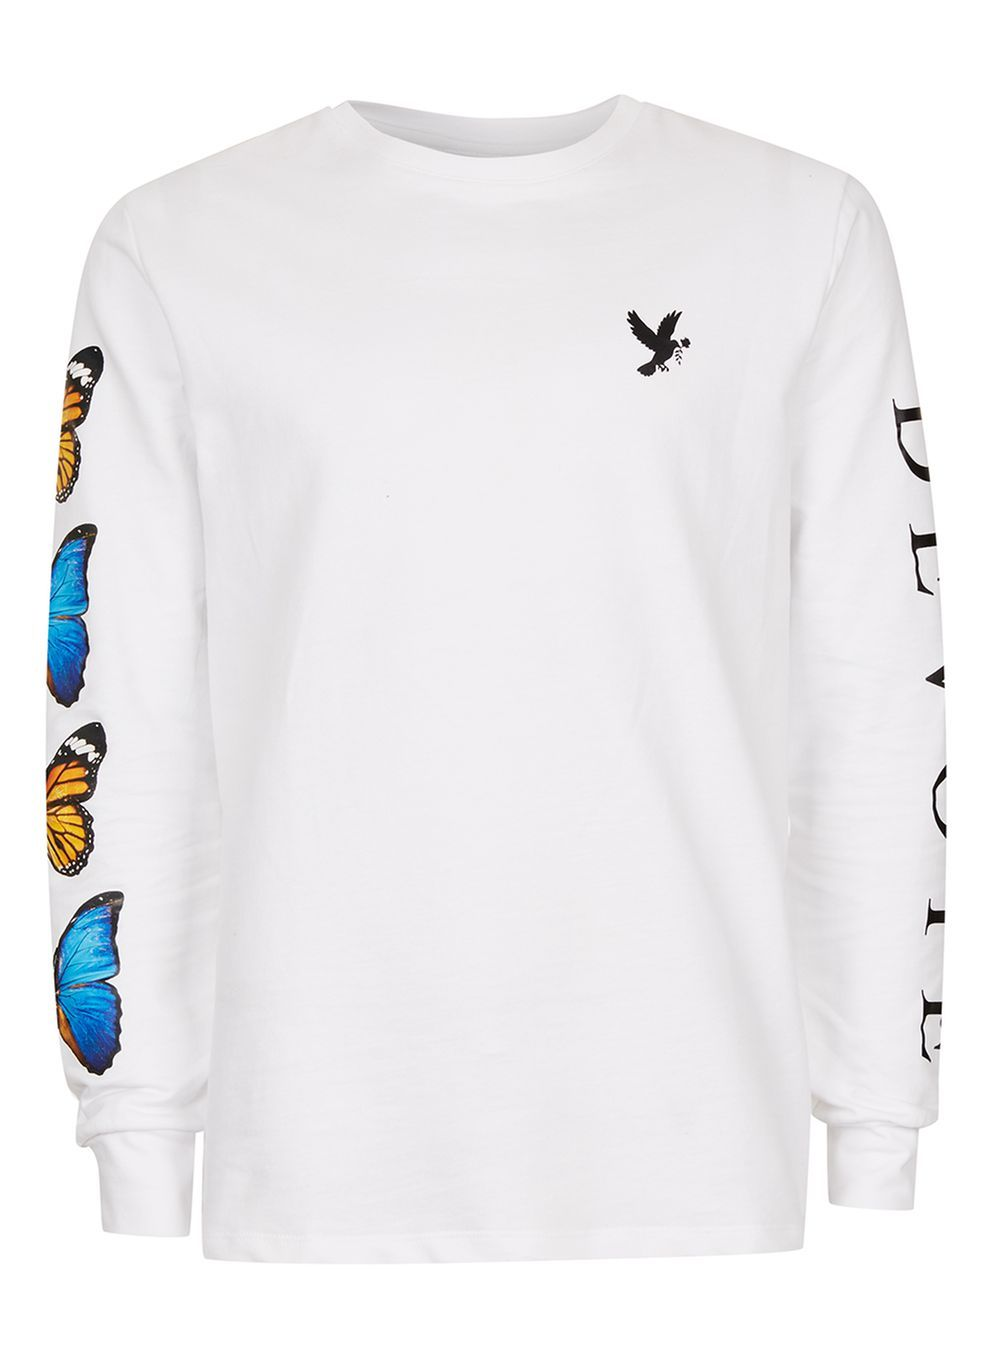 Activewear Clothing, Shoes & Accessories Devoted Butterfly Sweatshirt